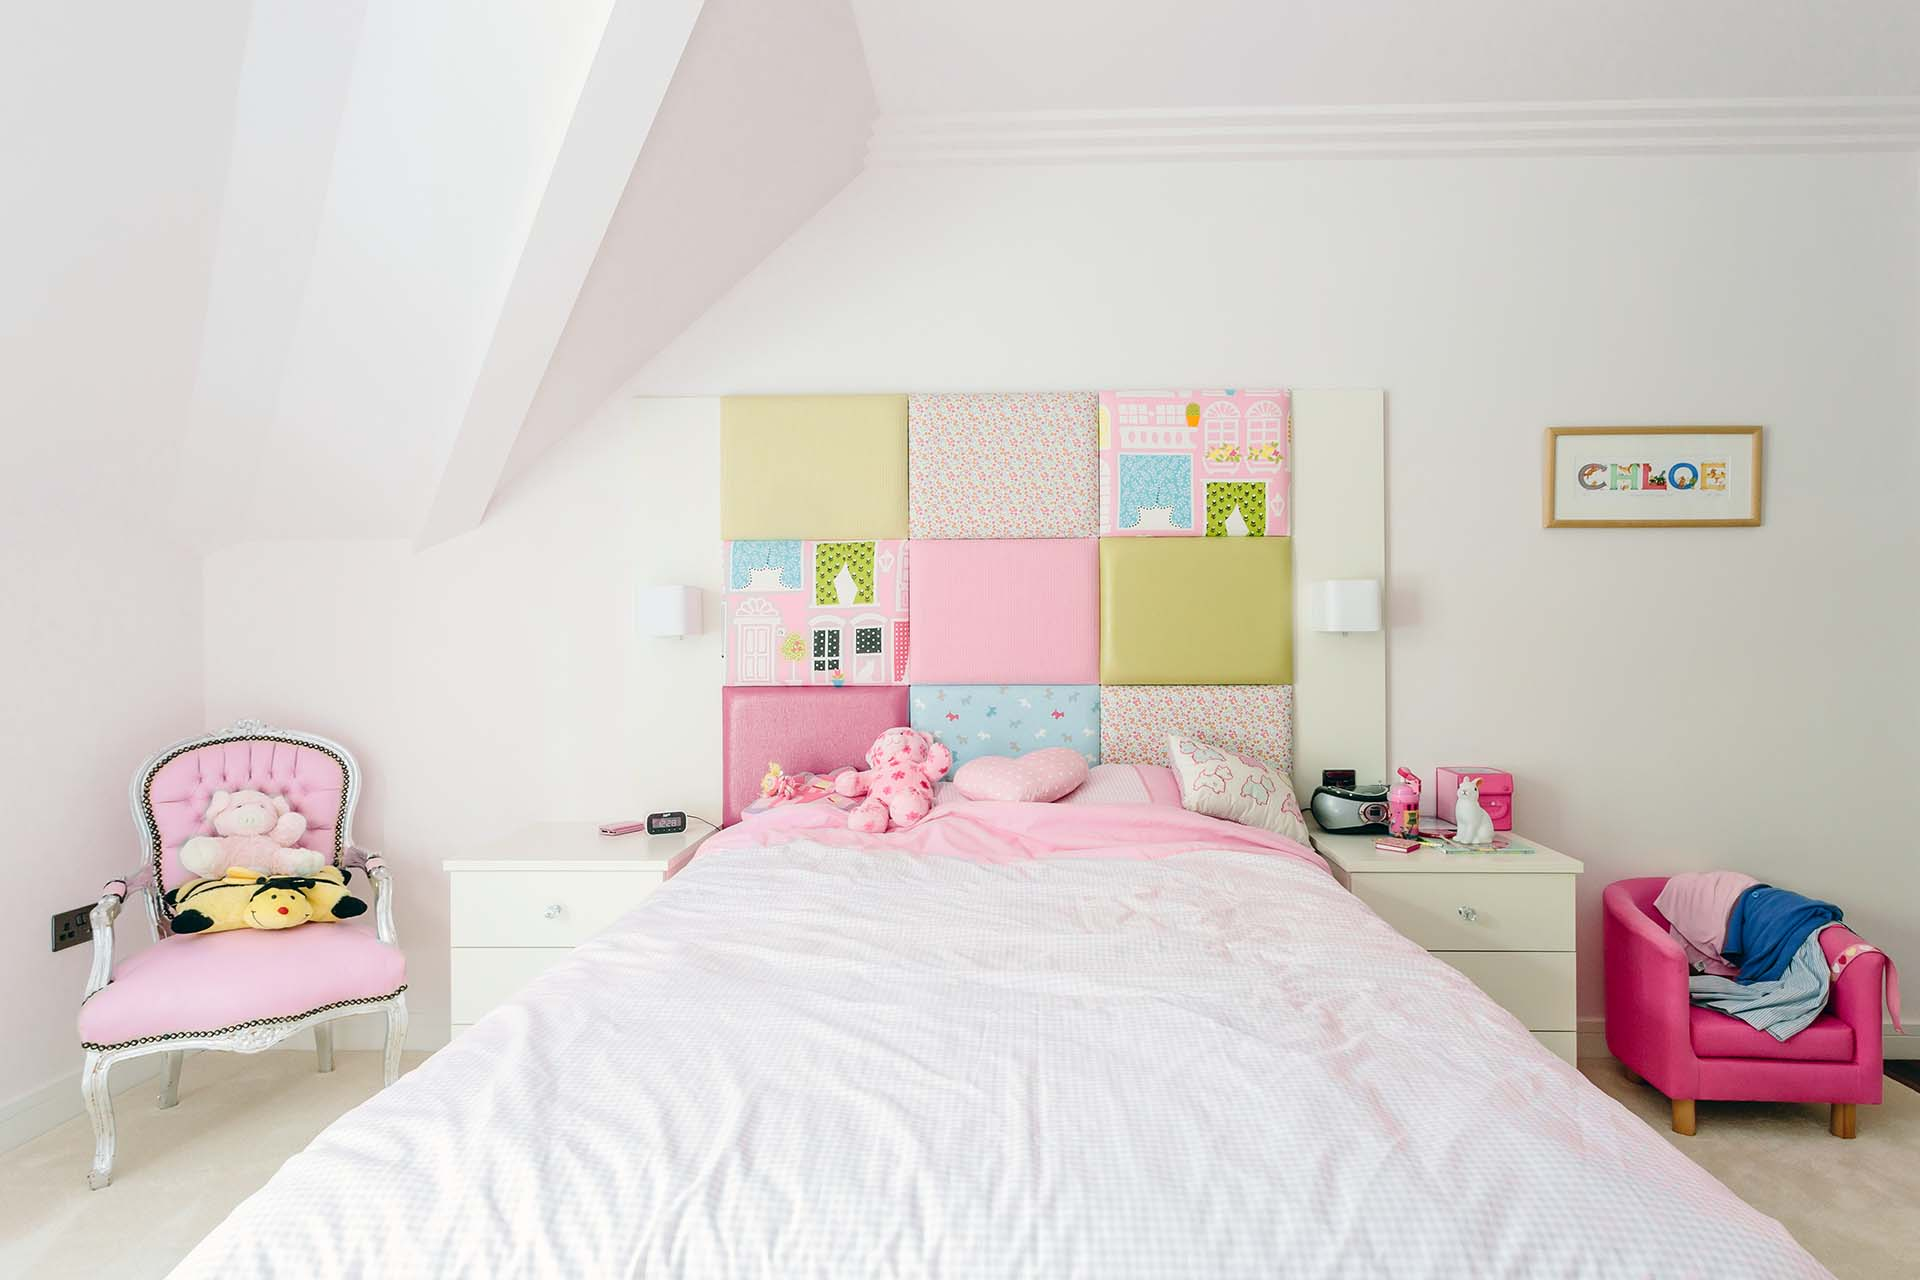 childrens fitted bedroom furniture. Children Bedroom Actual Work 2 Front View Childrens Fitted Furniture T